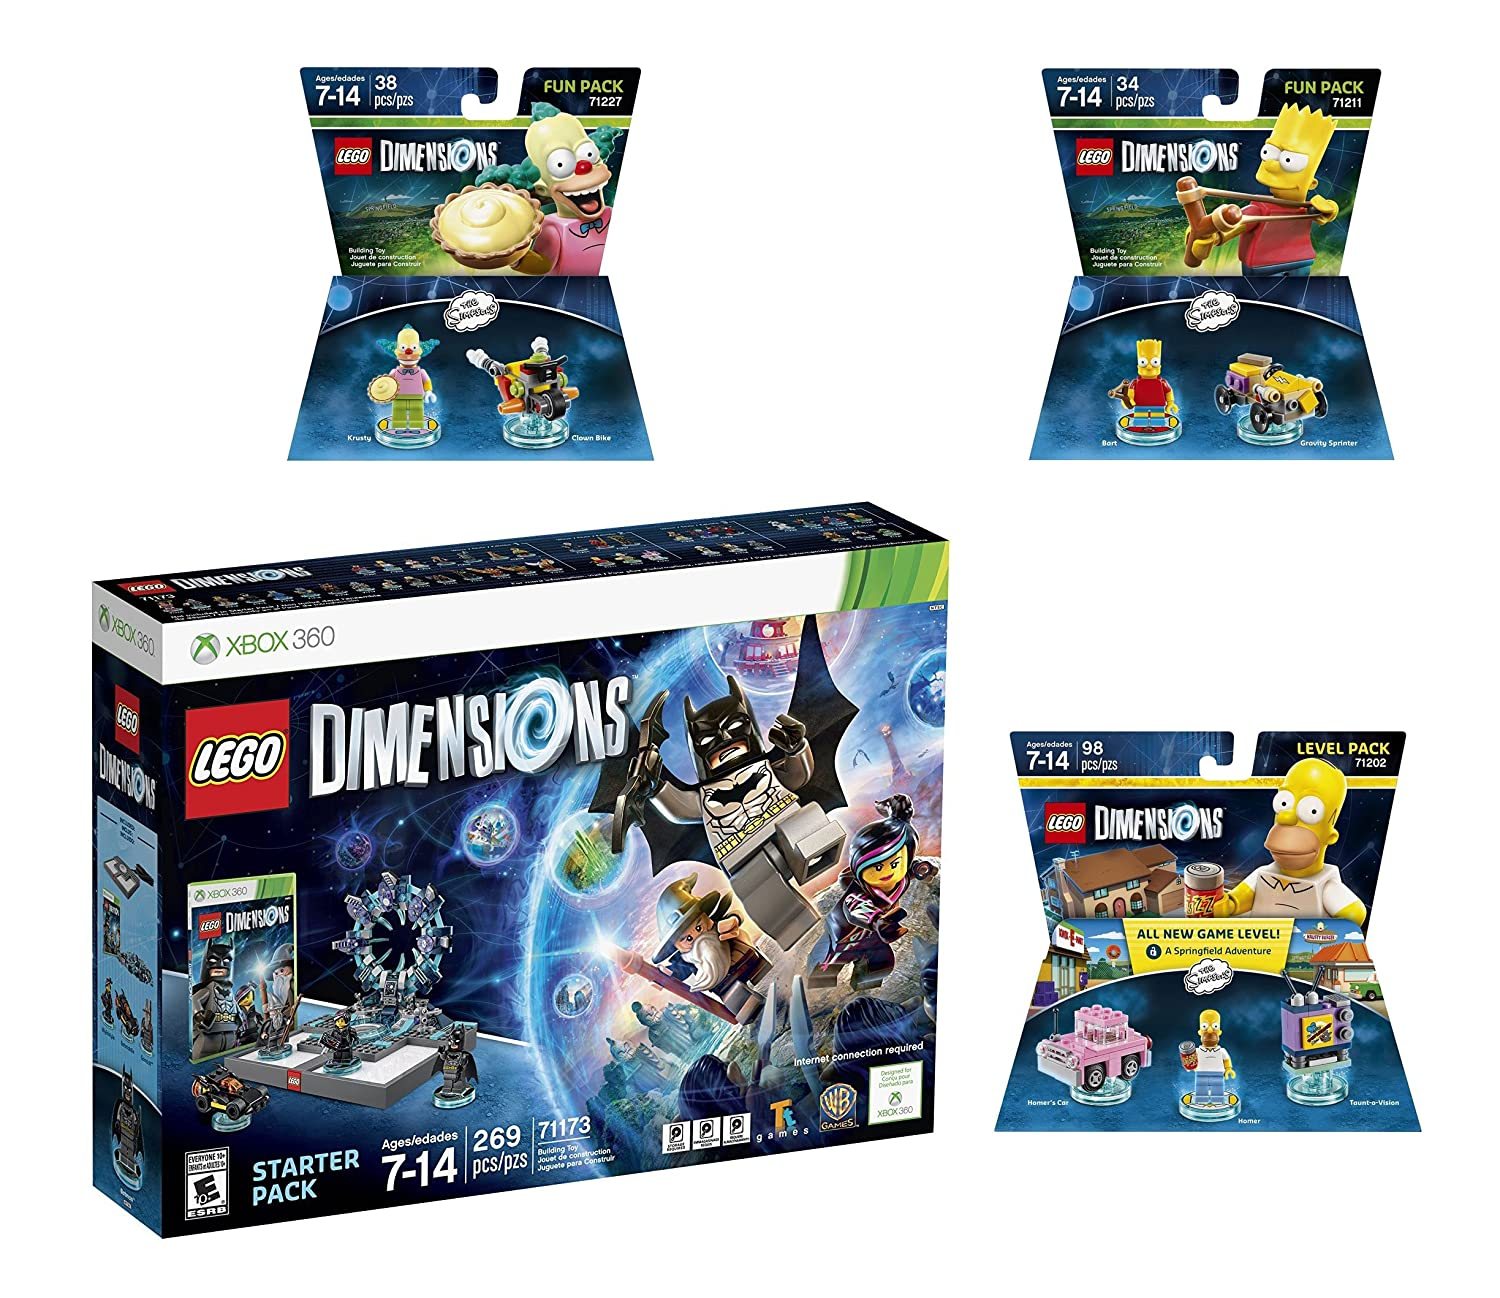 Amazon Com Lego Dimensions Starter Pack The Simpsons Homer Level Pack Bart Simpson Krusty Fun Packs For Xbox 360 Console Video Games